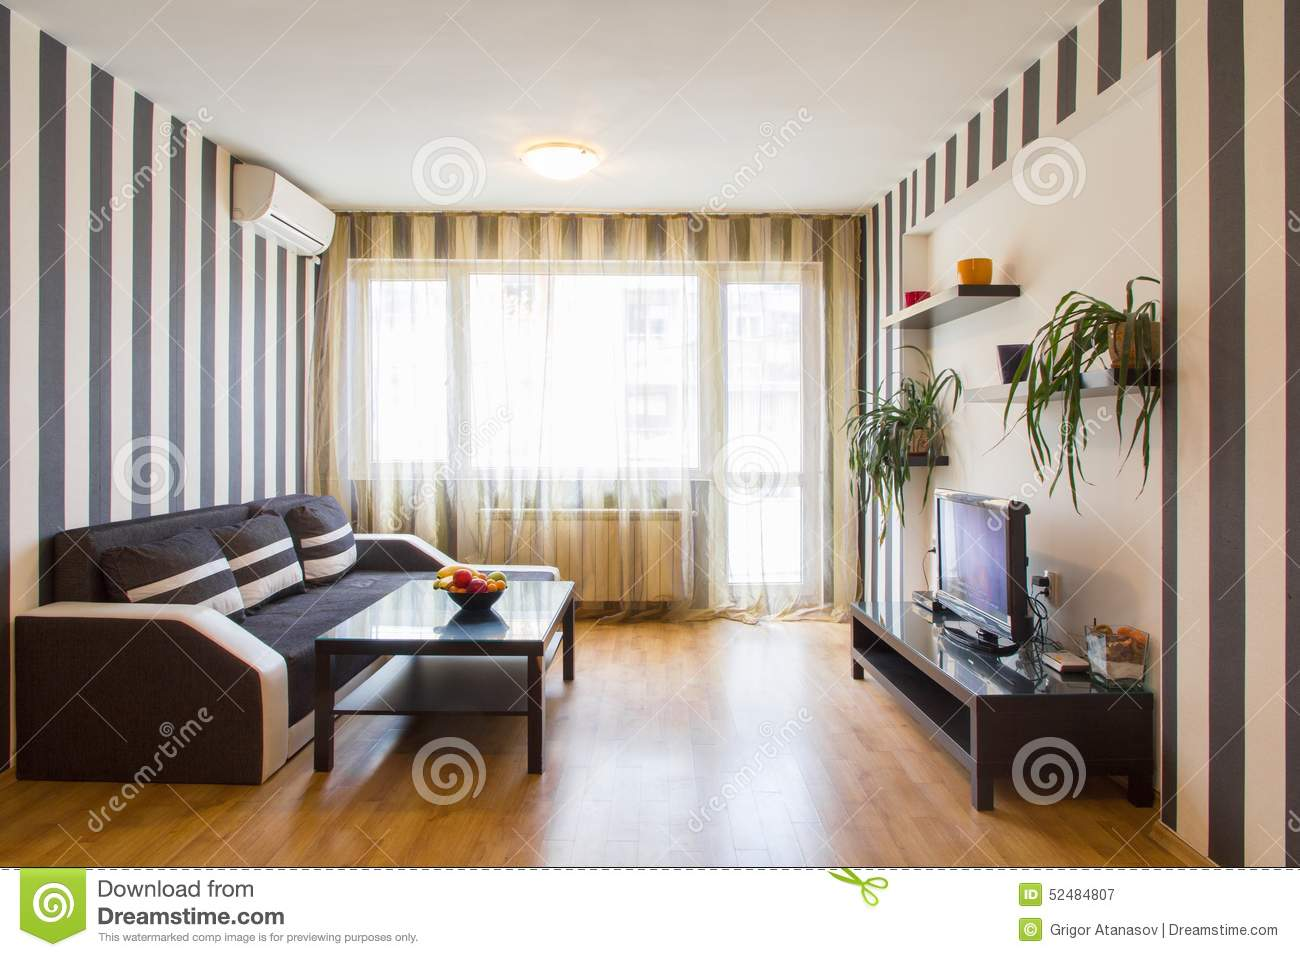 Living Room With Black And White Striped Walls Stock Photo Image 52484807